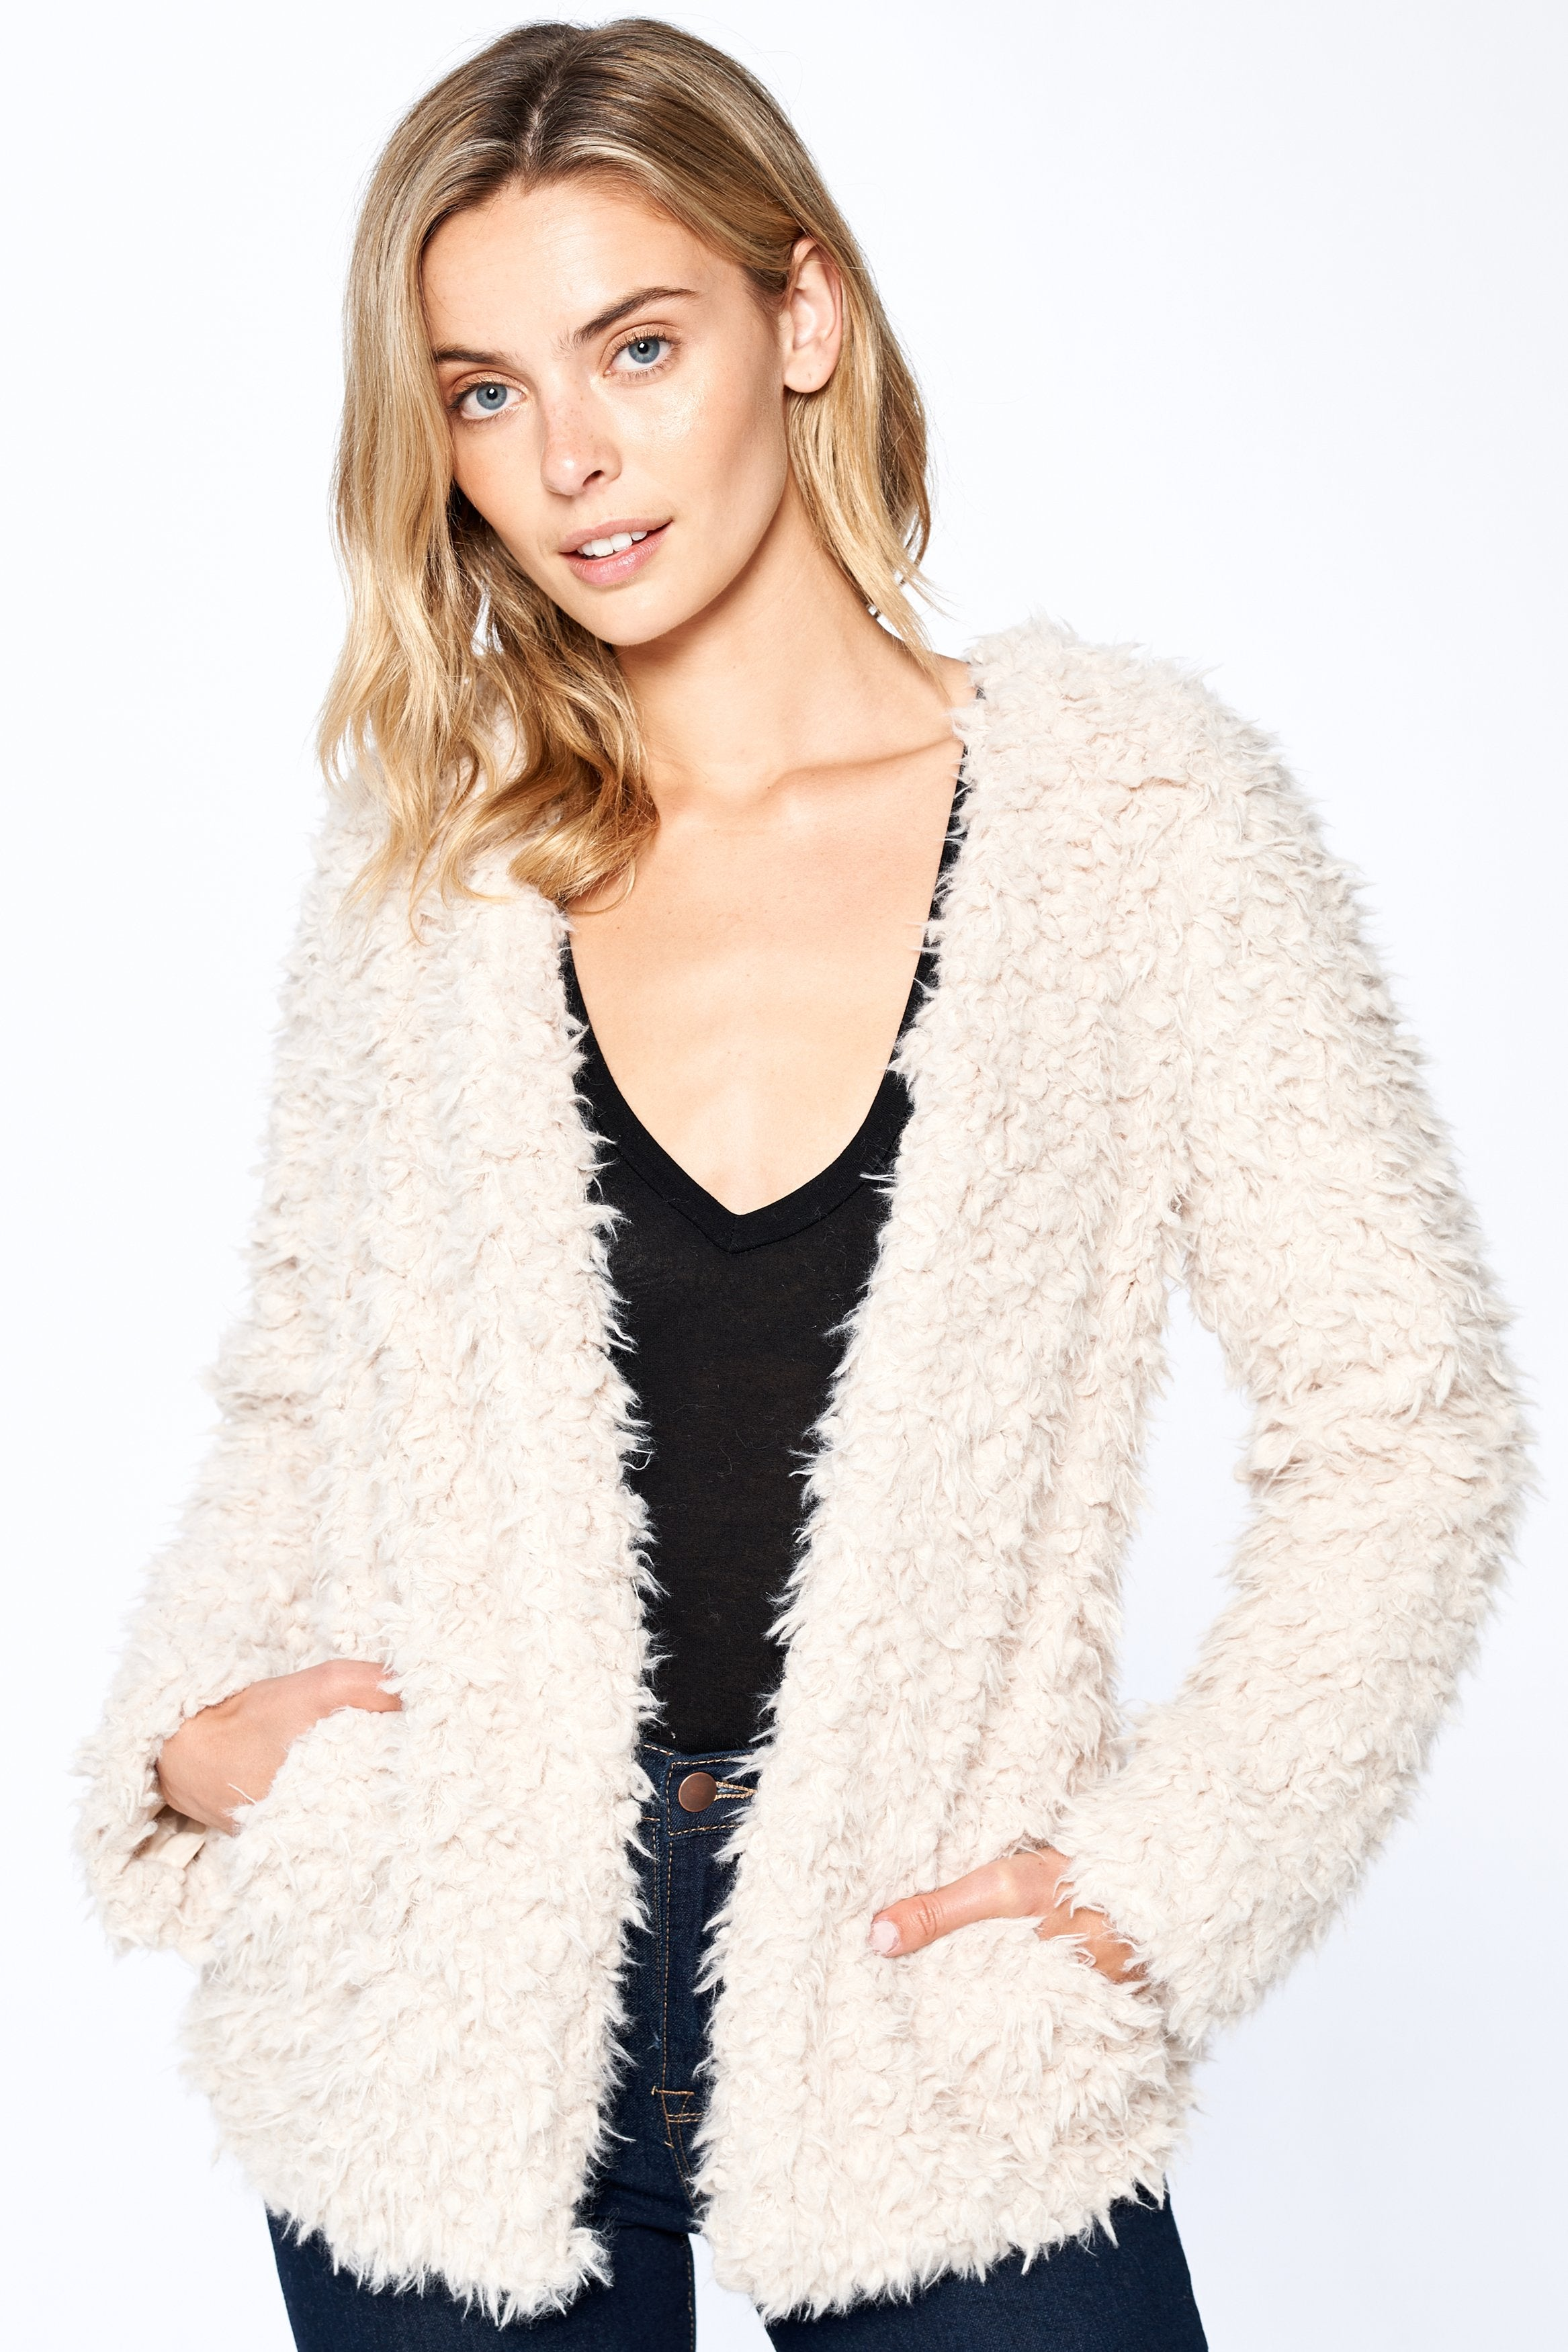 Women's Vintage Soft Fluffy Long Sleeve Elegant Faux Fur Coat Jacket